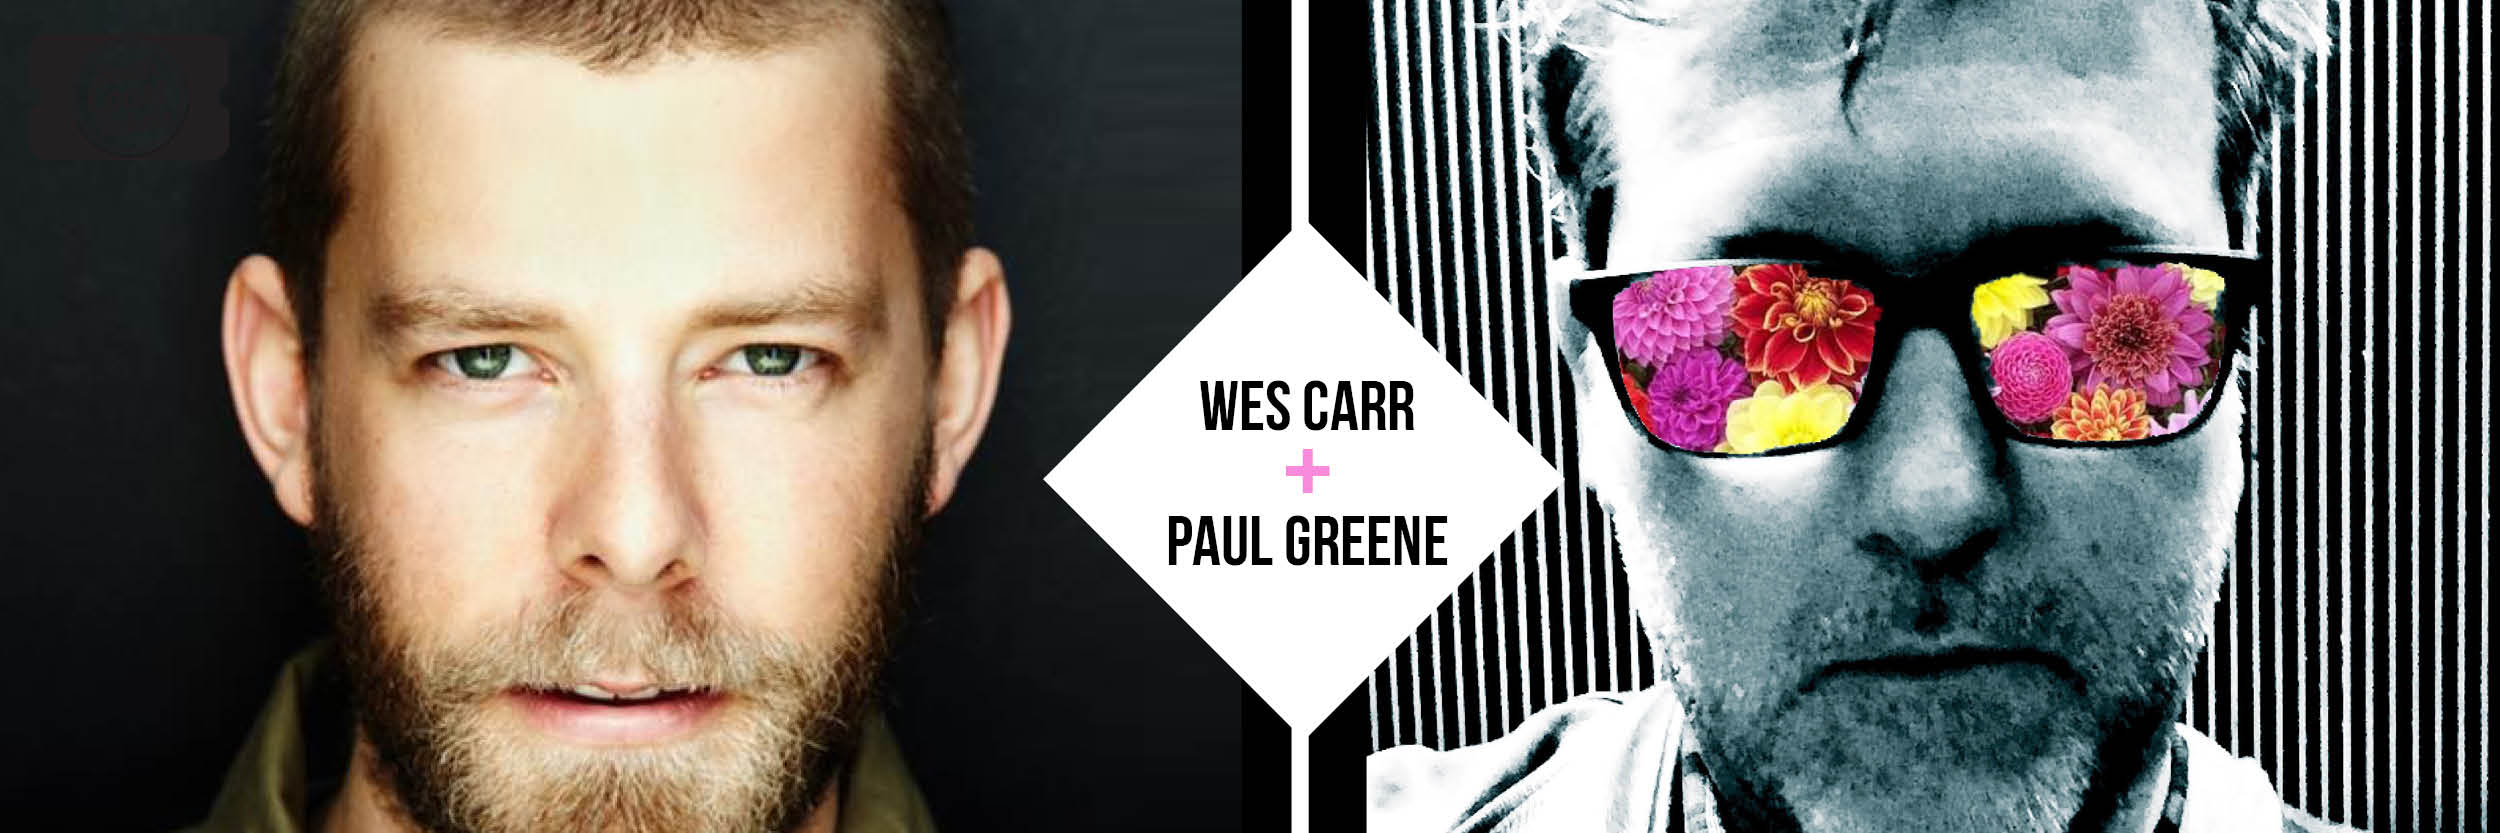 Sounds Delicious Summer Series: Wes Carr & Paul Greene